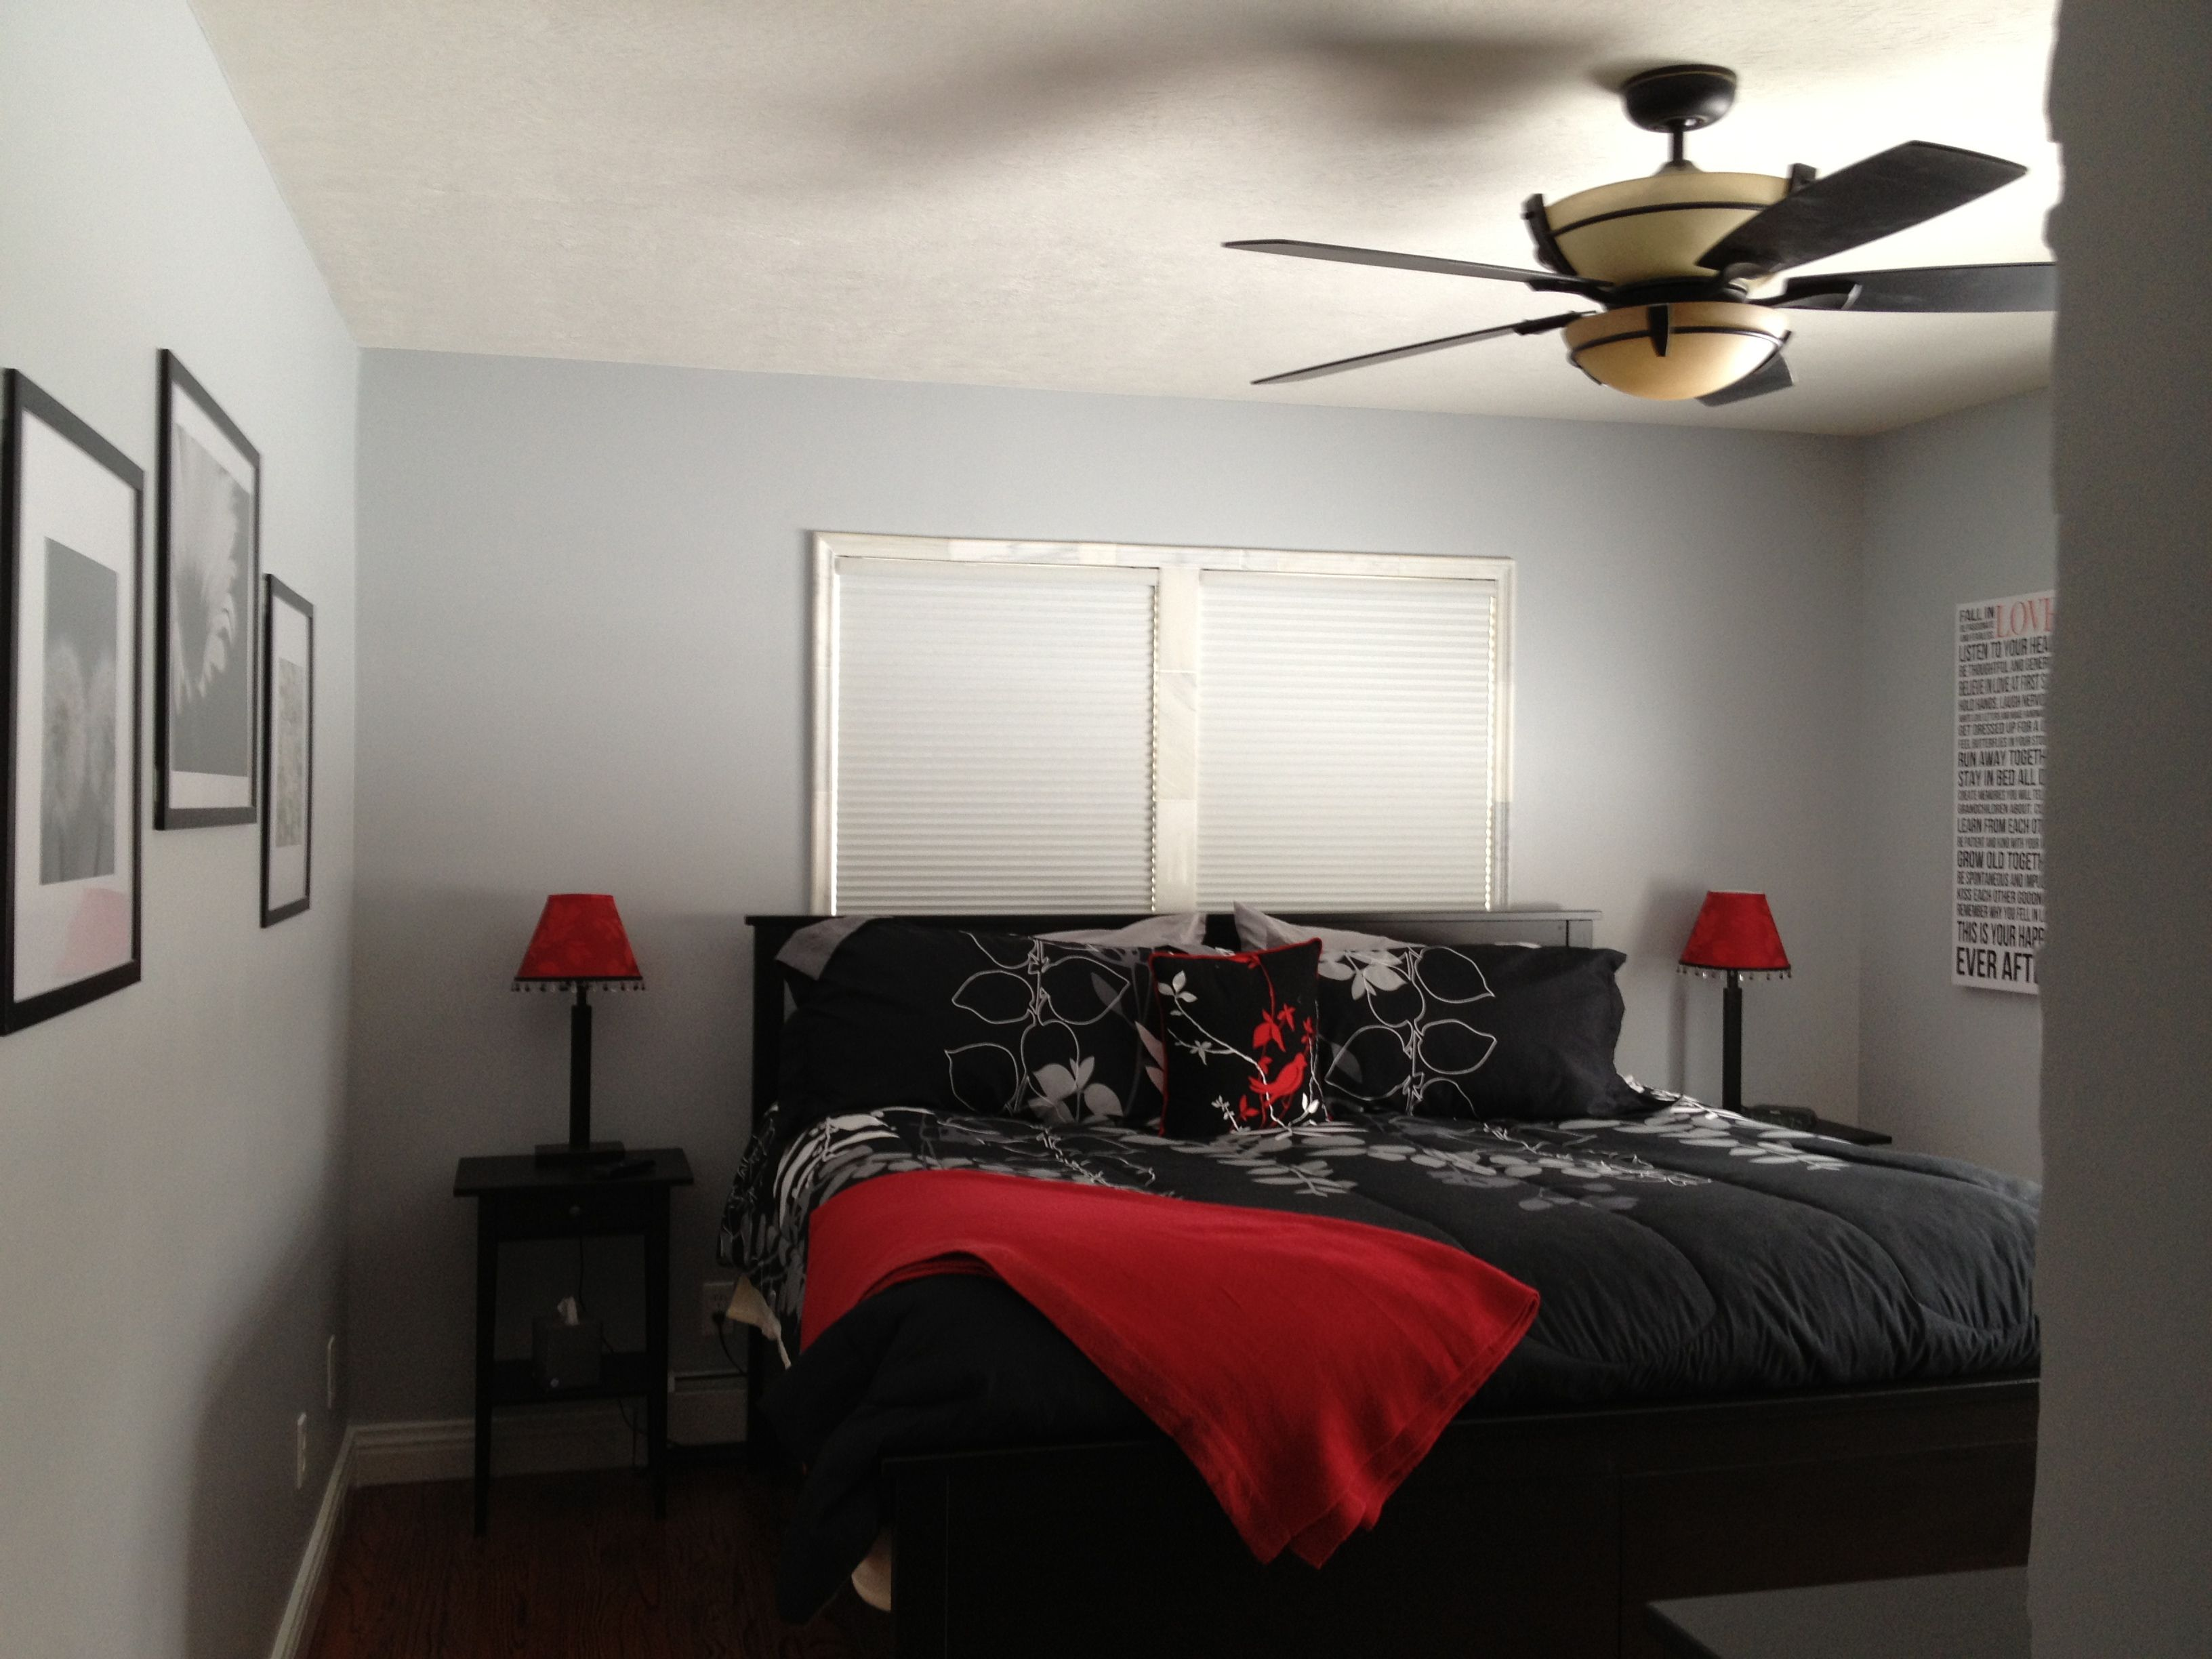 Bedroom colors red and black - Grey White Black And Red Master Bedroom Love It